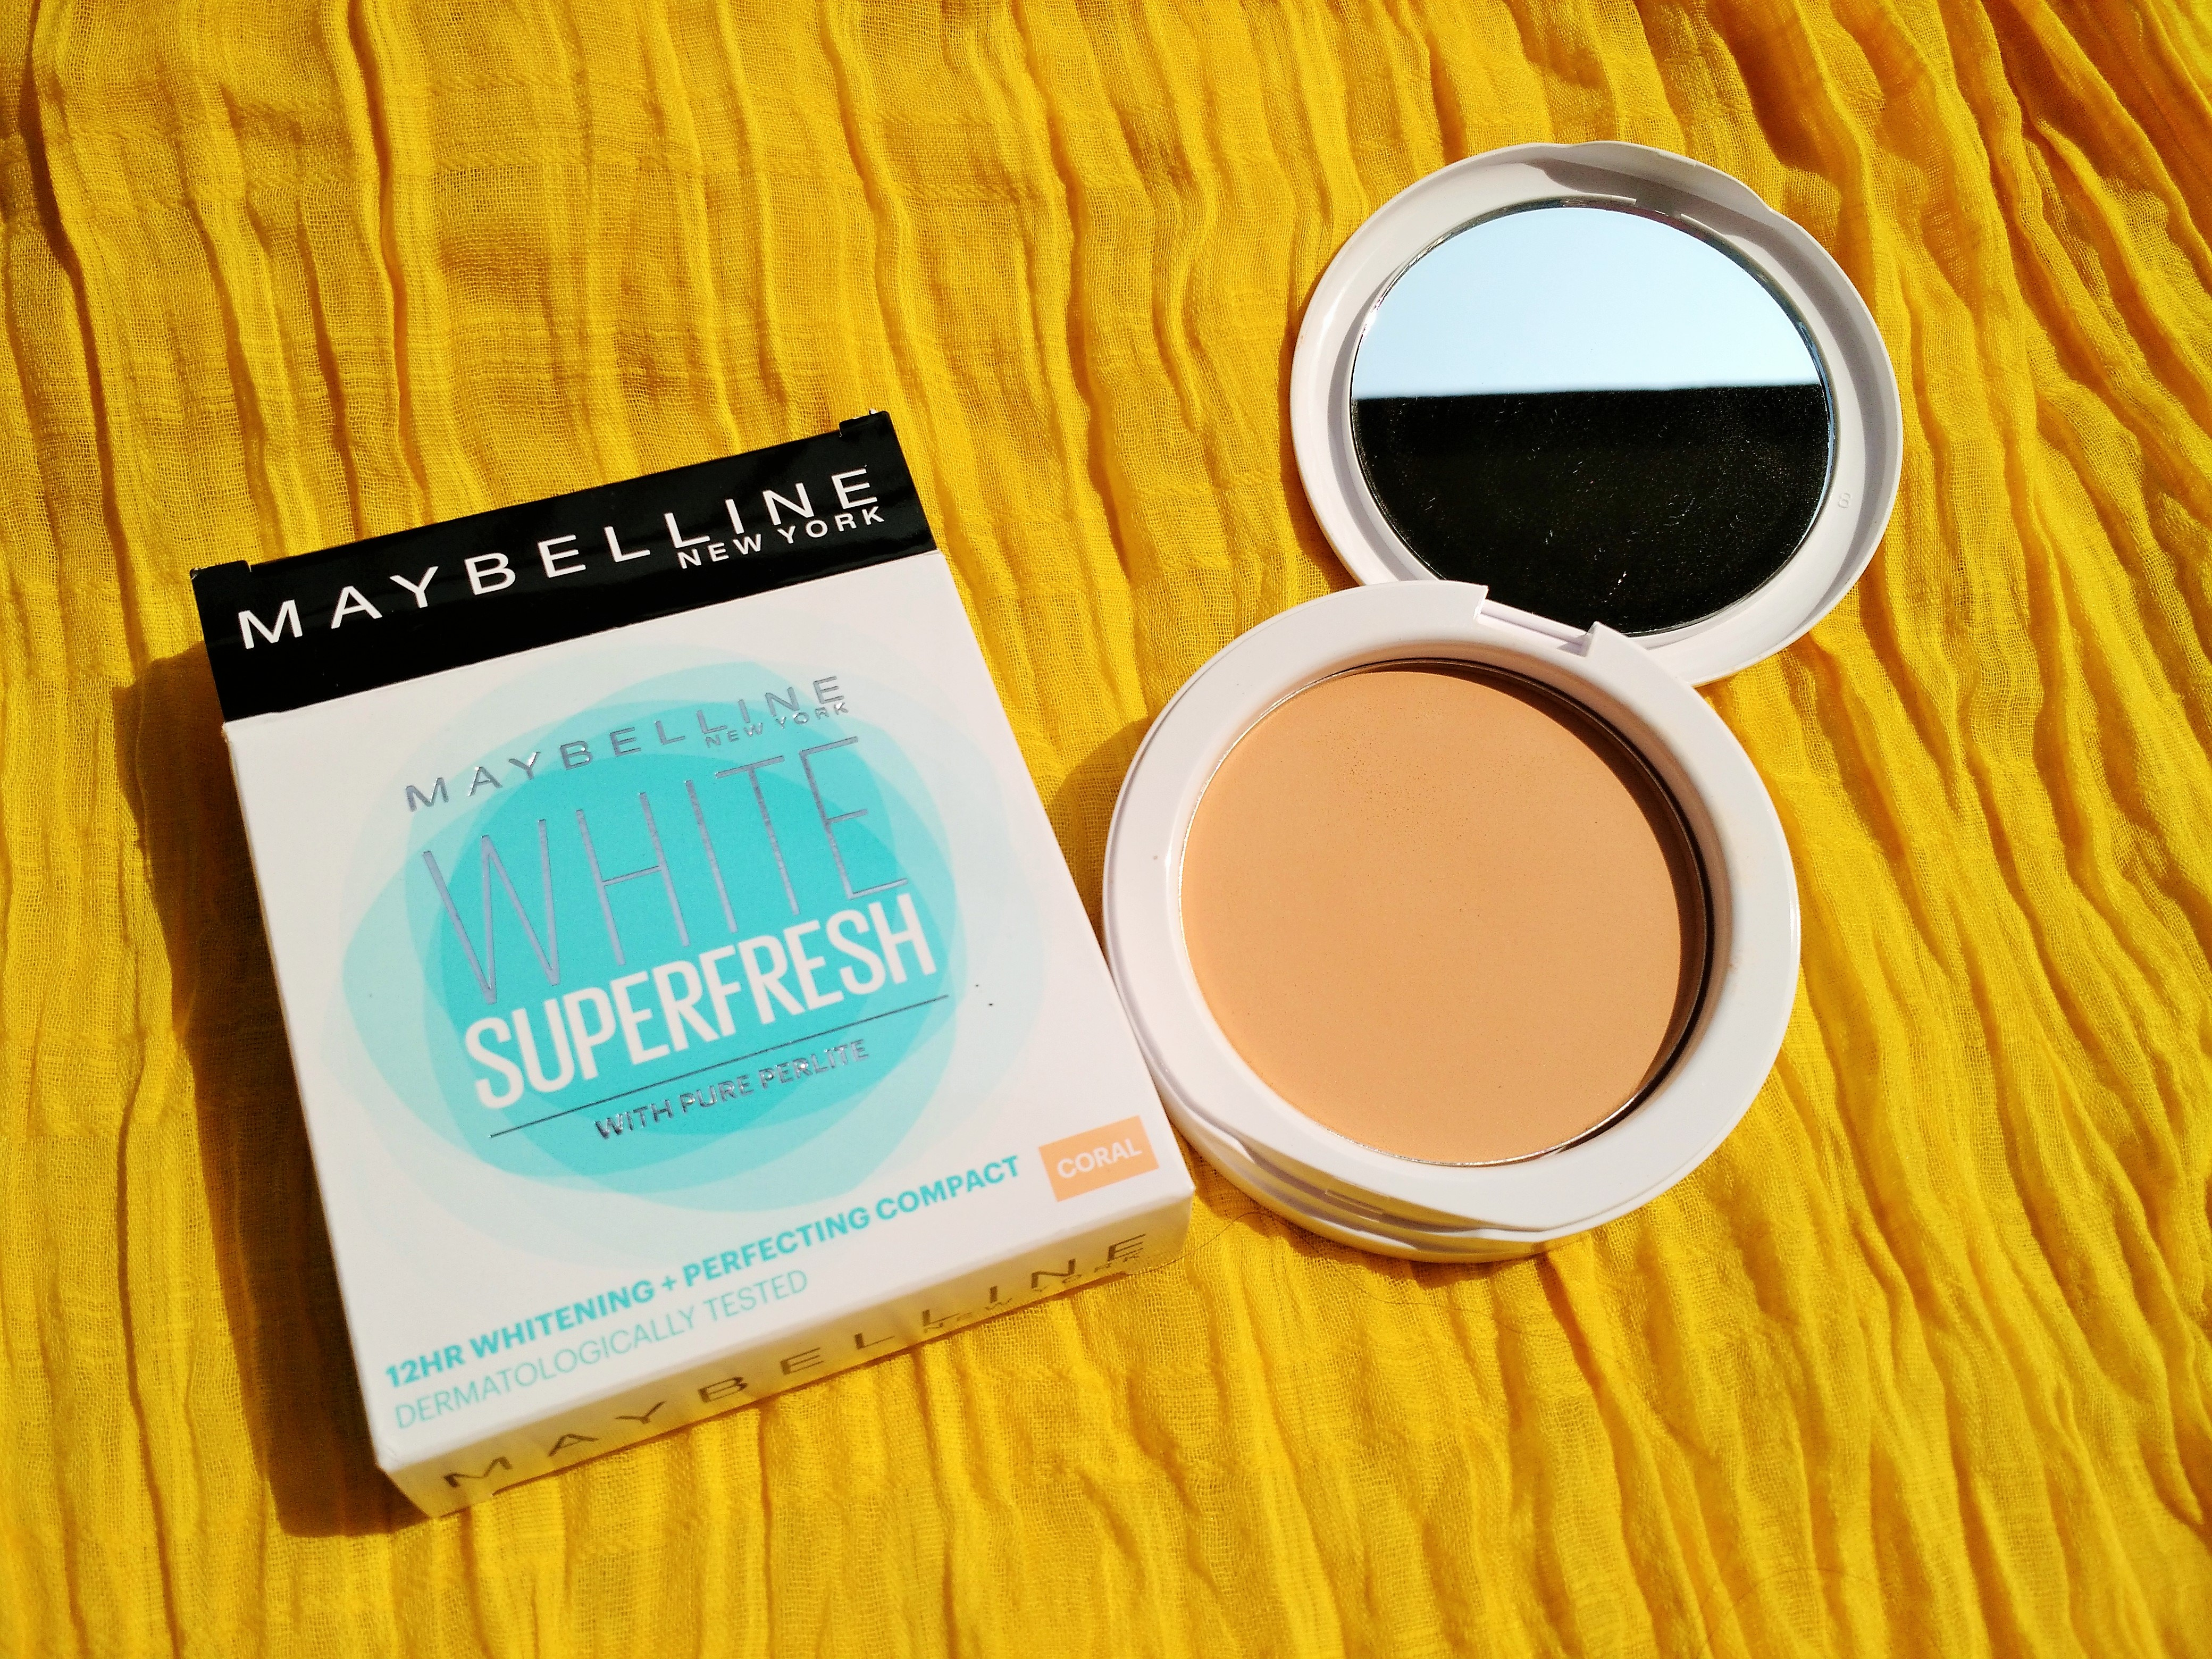 Maybelline White Superfresh 12 Hr Compact